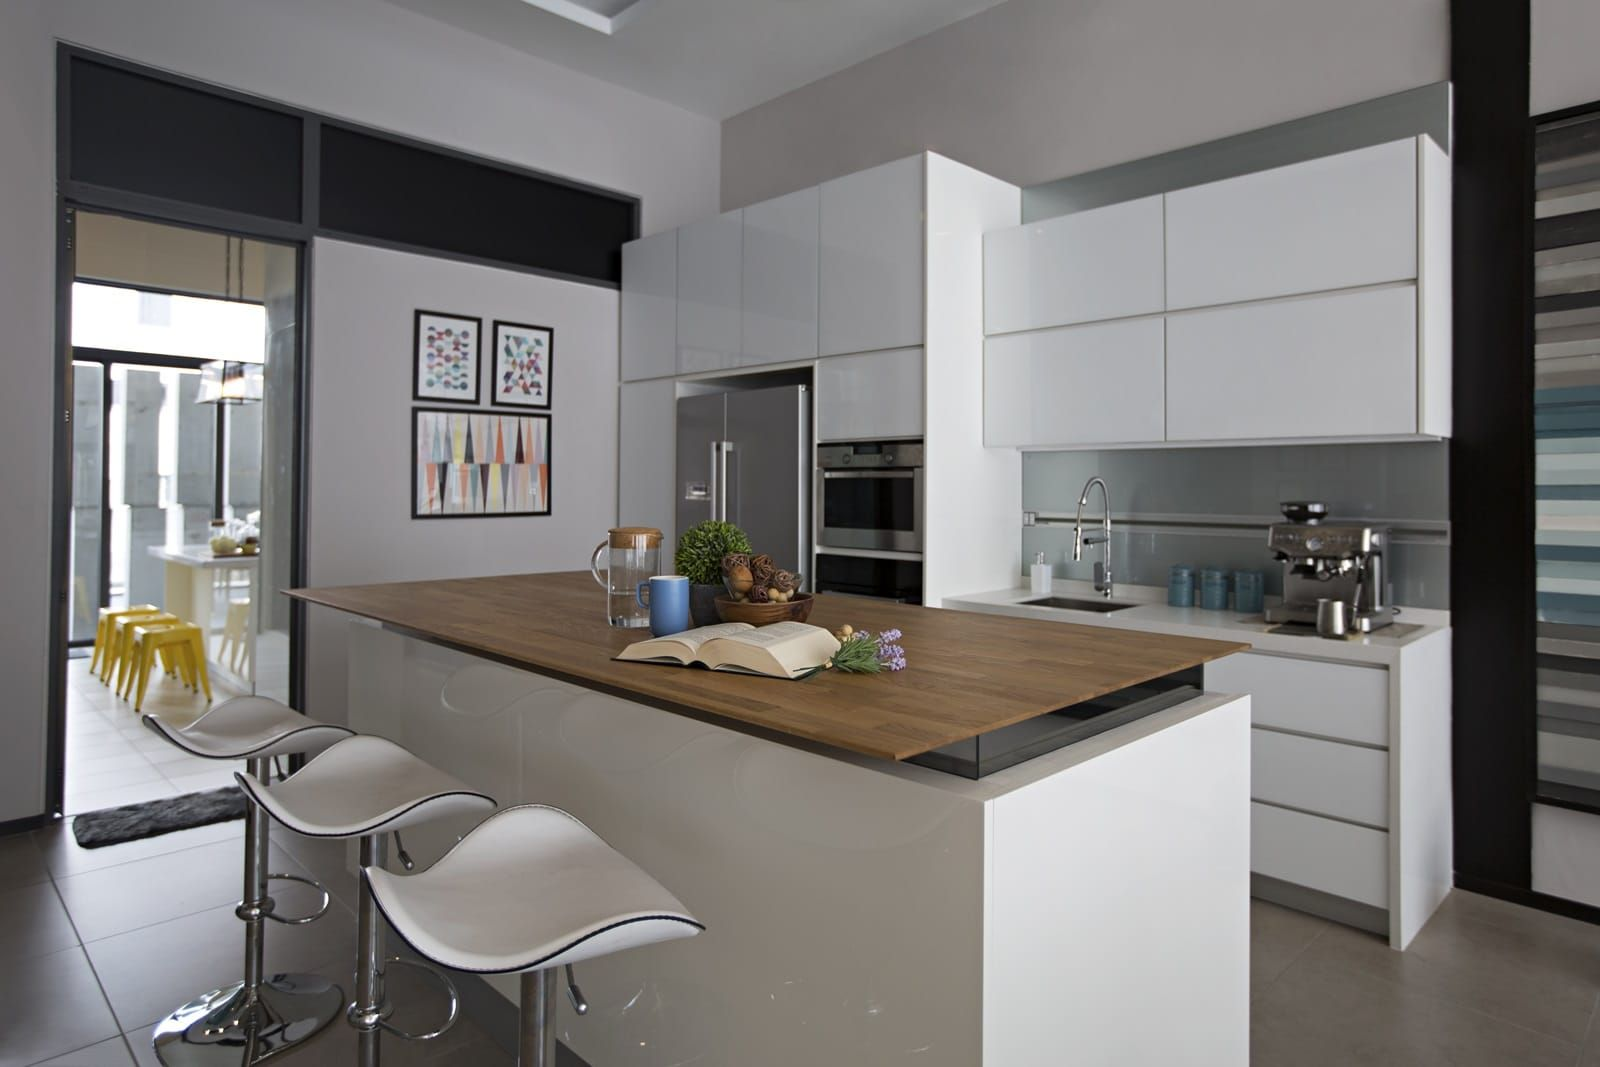 Modern Terrace House Dry Kitchen And Island By Turn Design Interior